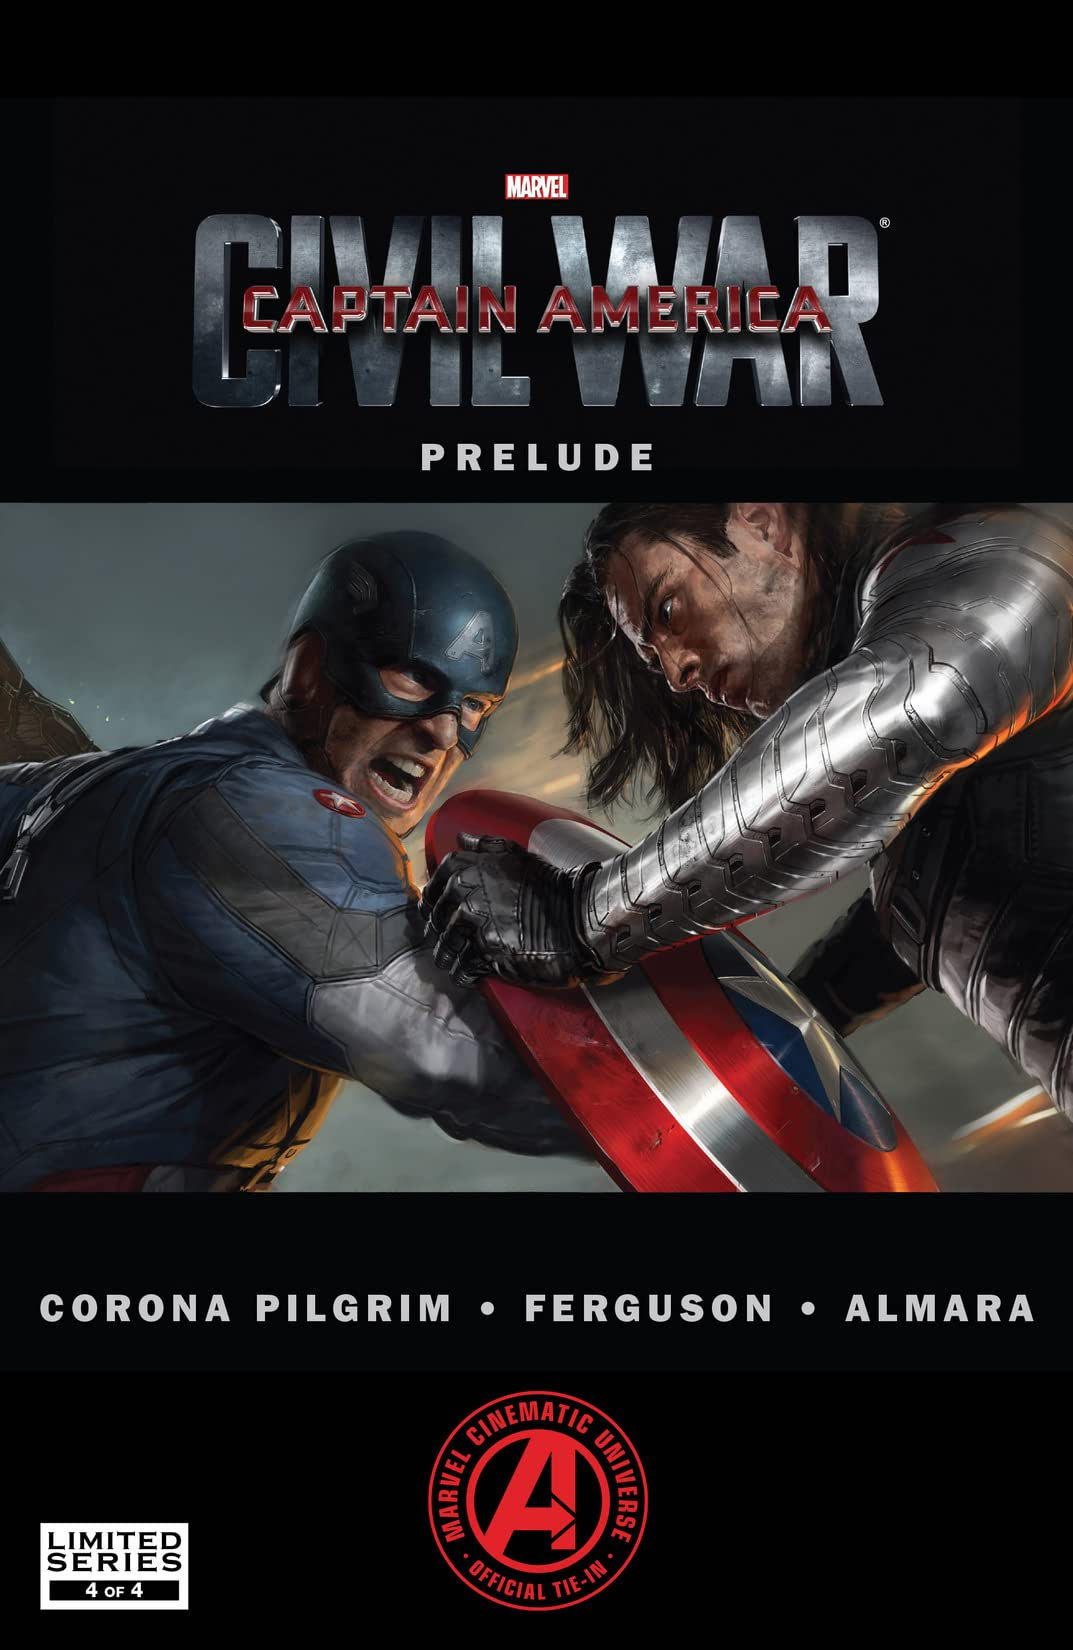 Marvel's Captain America: Civil War Prelude (2015) #4